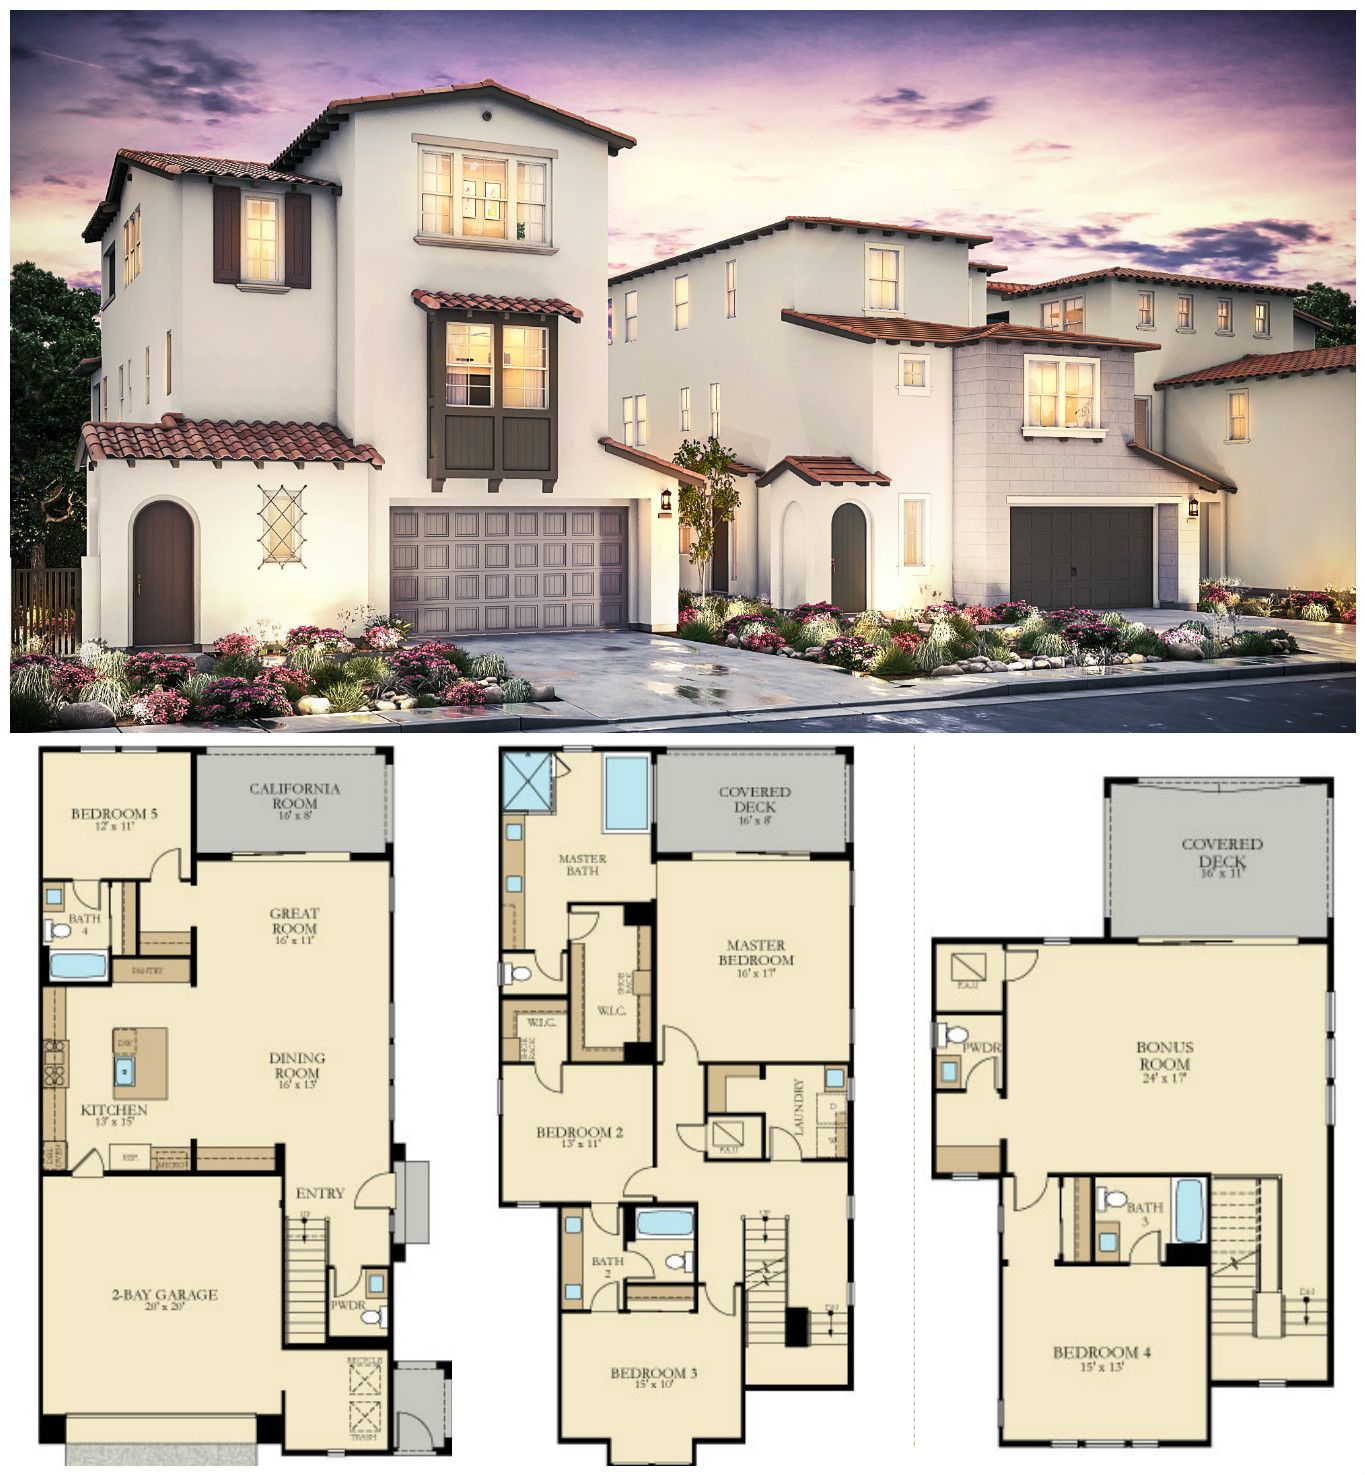 Grand Homes New Home Builder: South Pointe Grand Opens NEXT SATURDAY! Have You Seen